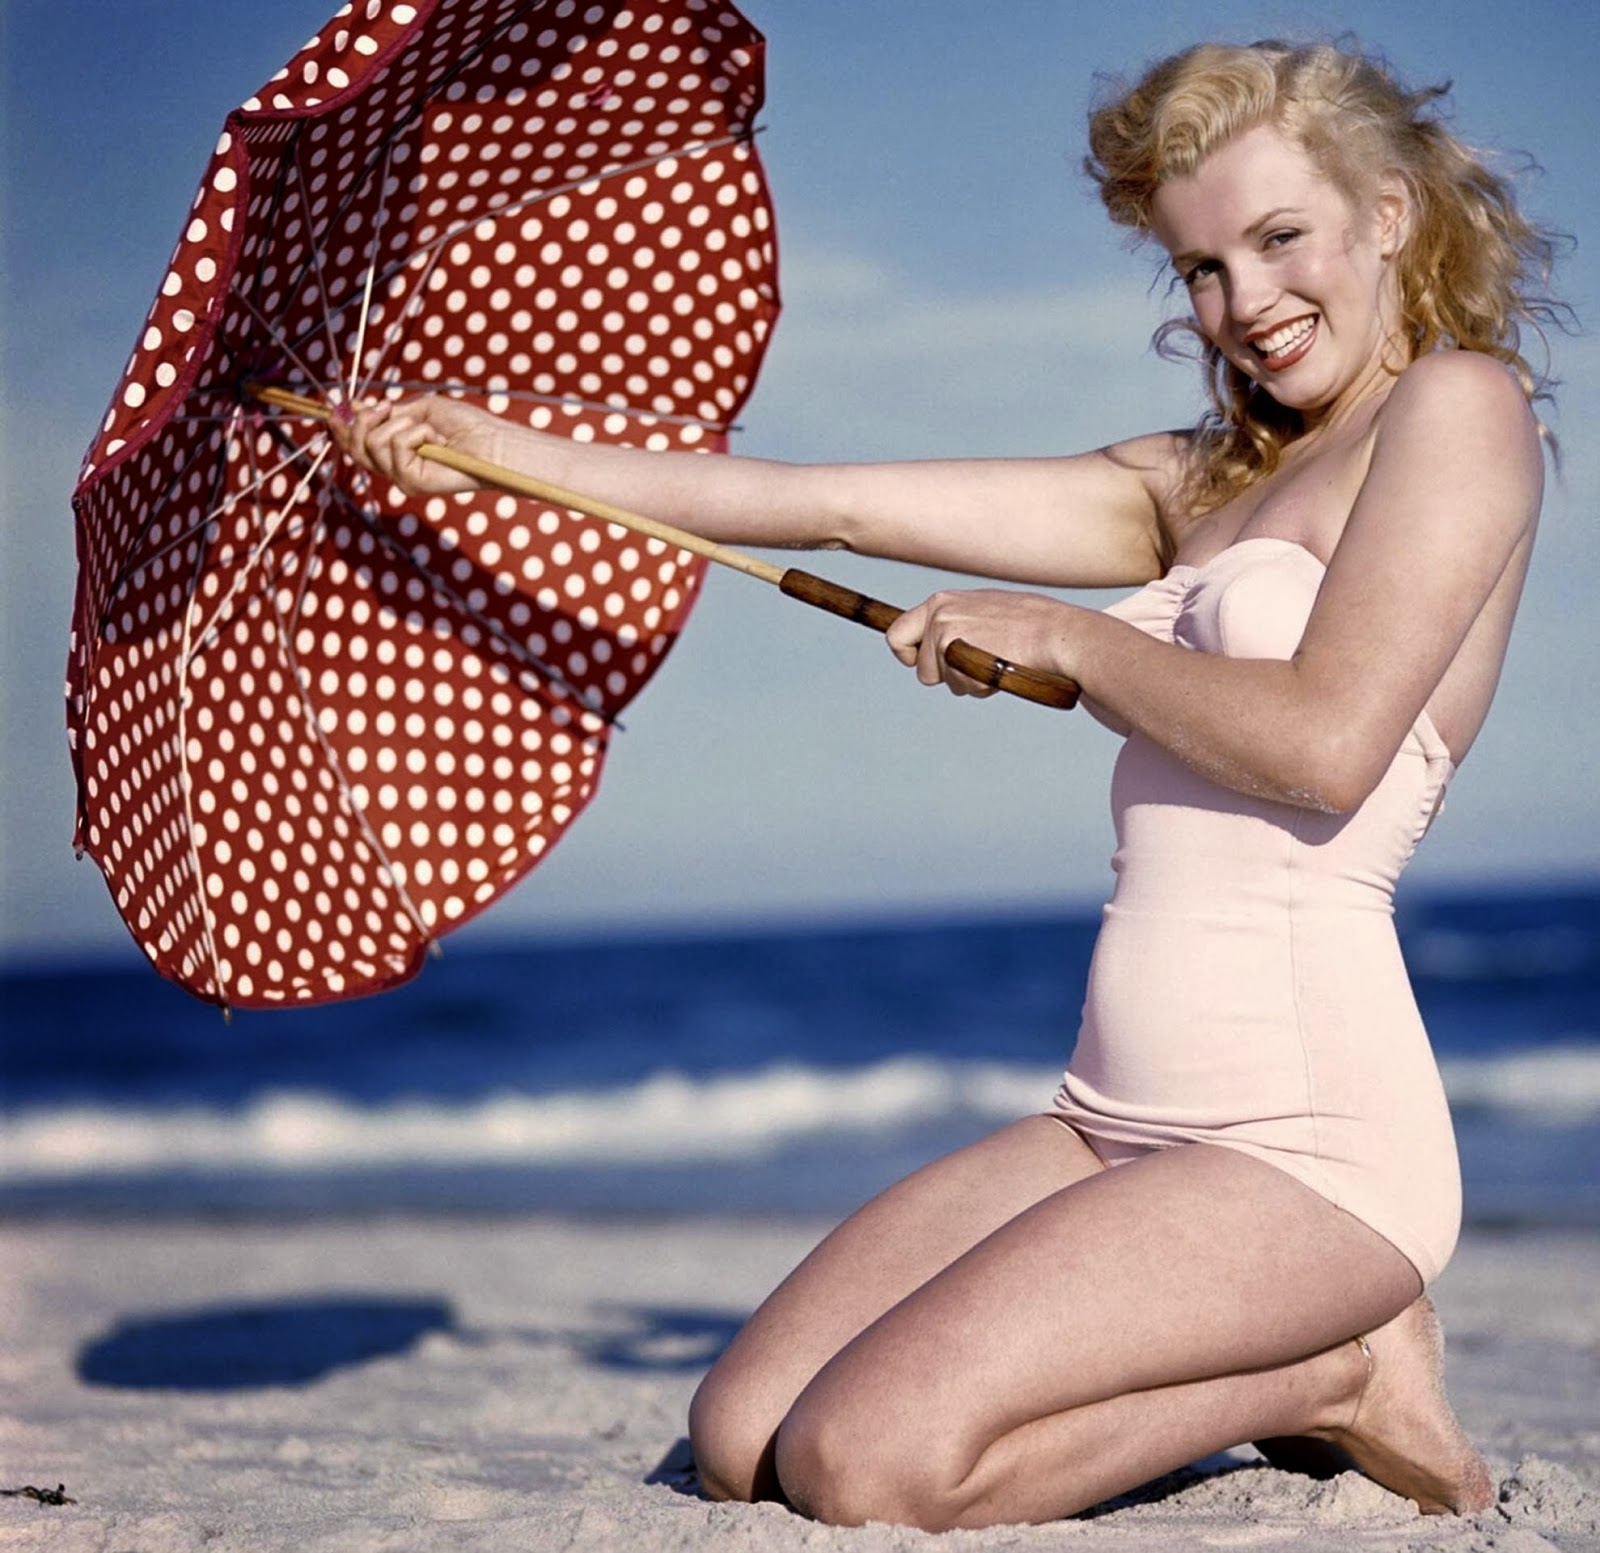 A young Marilyn Monroe, nostalgic legend